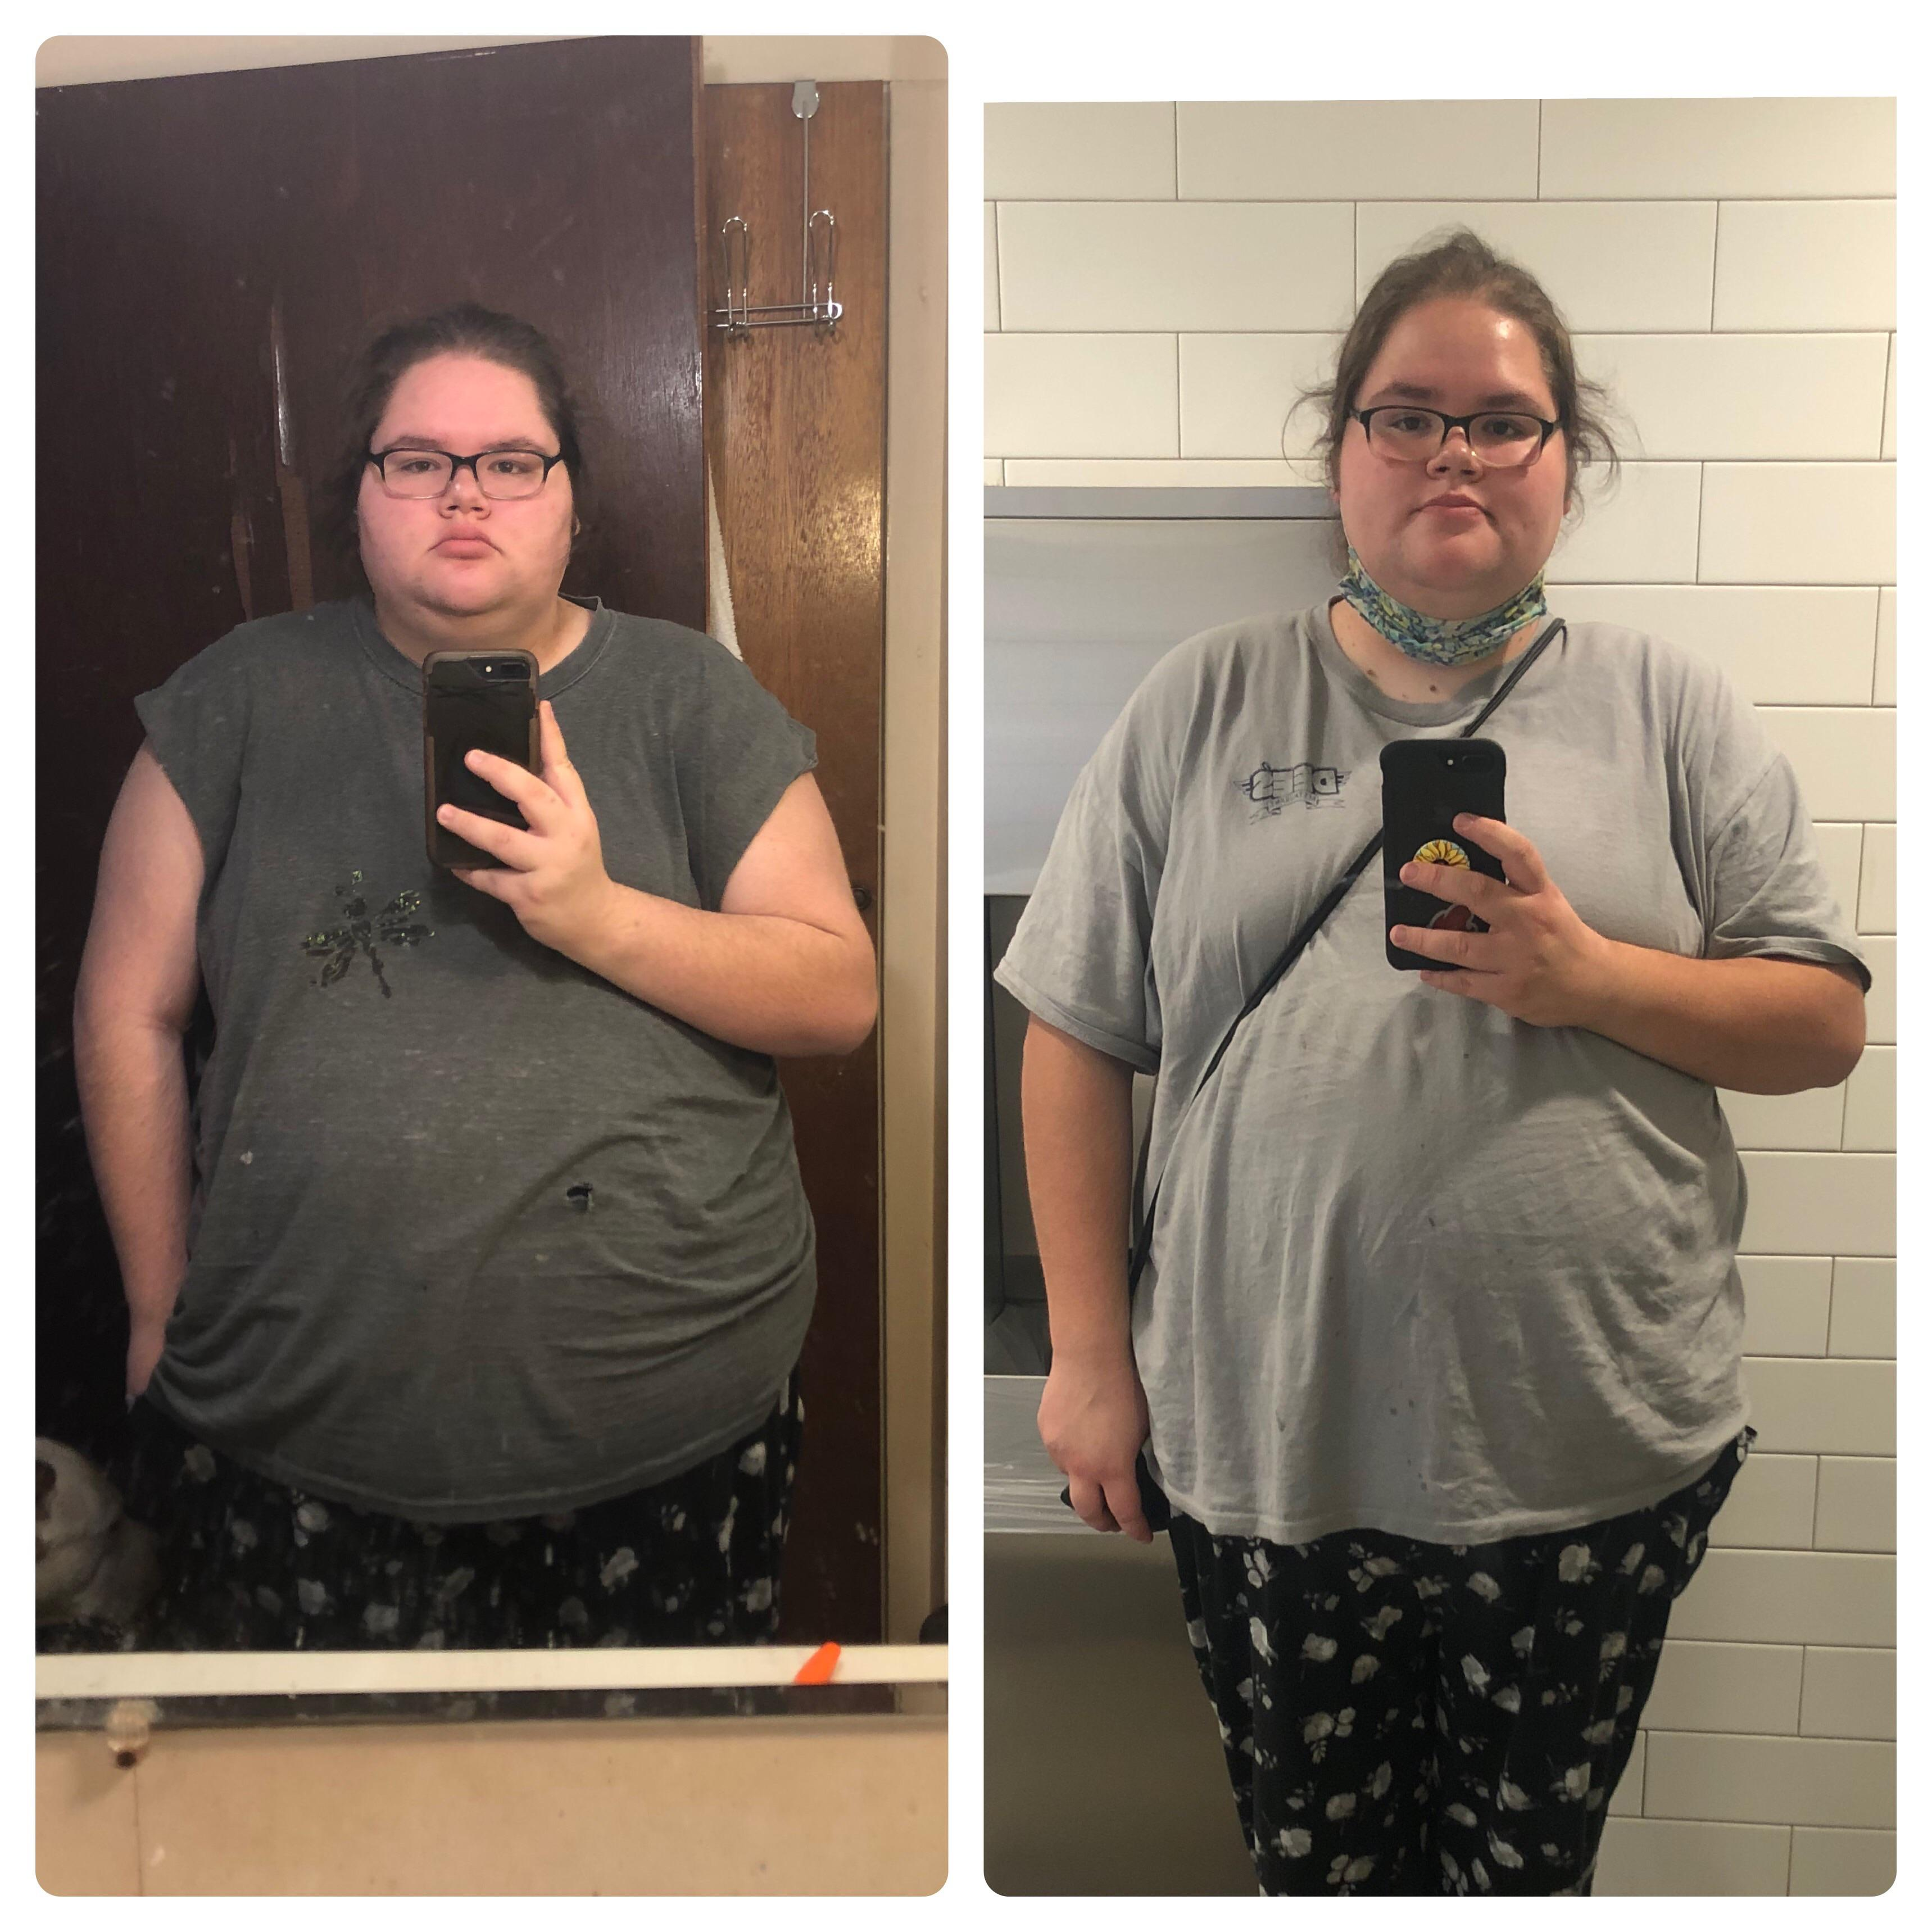 42 lbs Weight Loss 5 foot 8 Female 364 lbs to 322 lbs